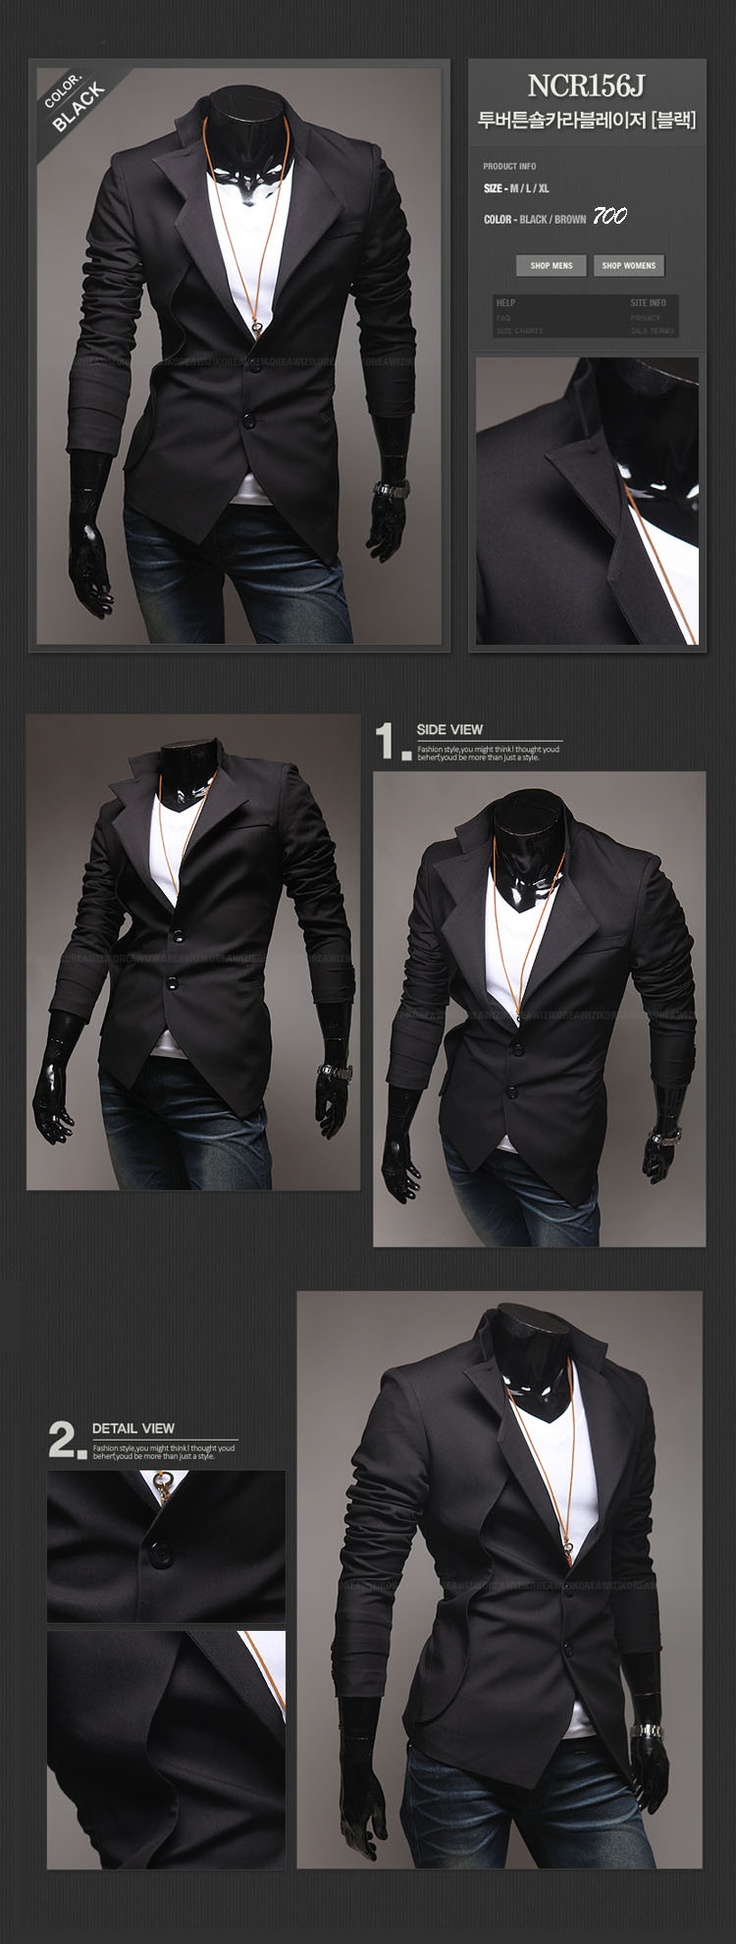 Nice: Mens Style, Forward, Food Diy, My Life, Hair Food, Men Fashion, Men'S Style, Man Clothing, Black Blazers